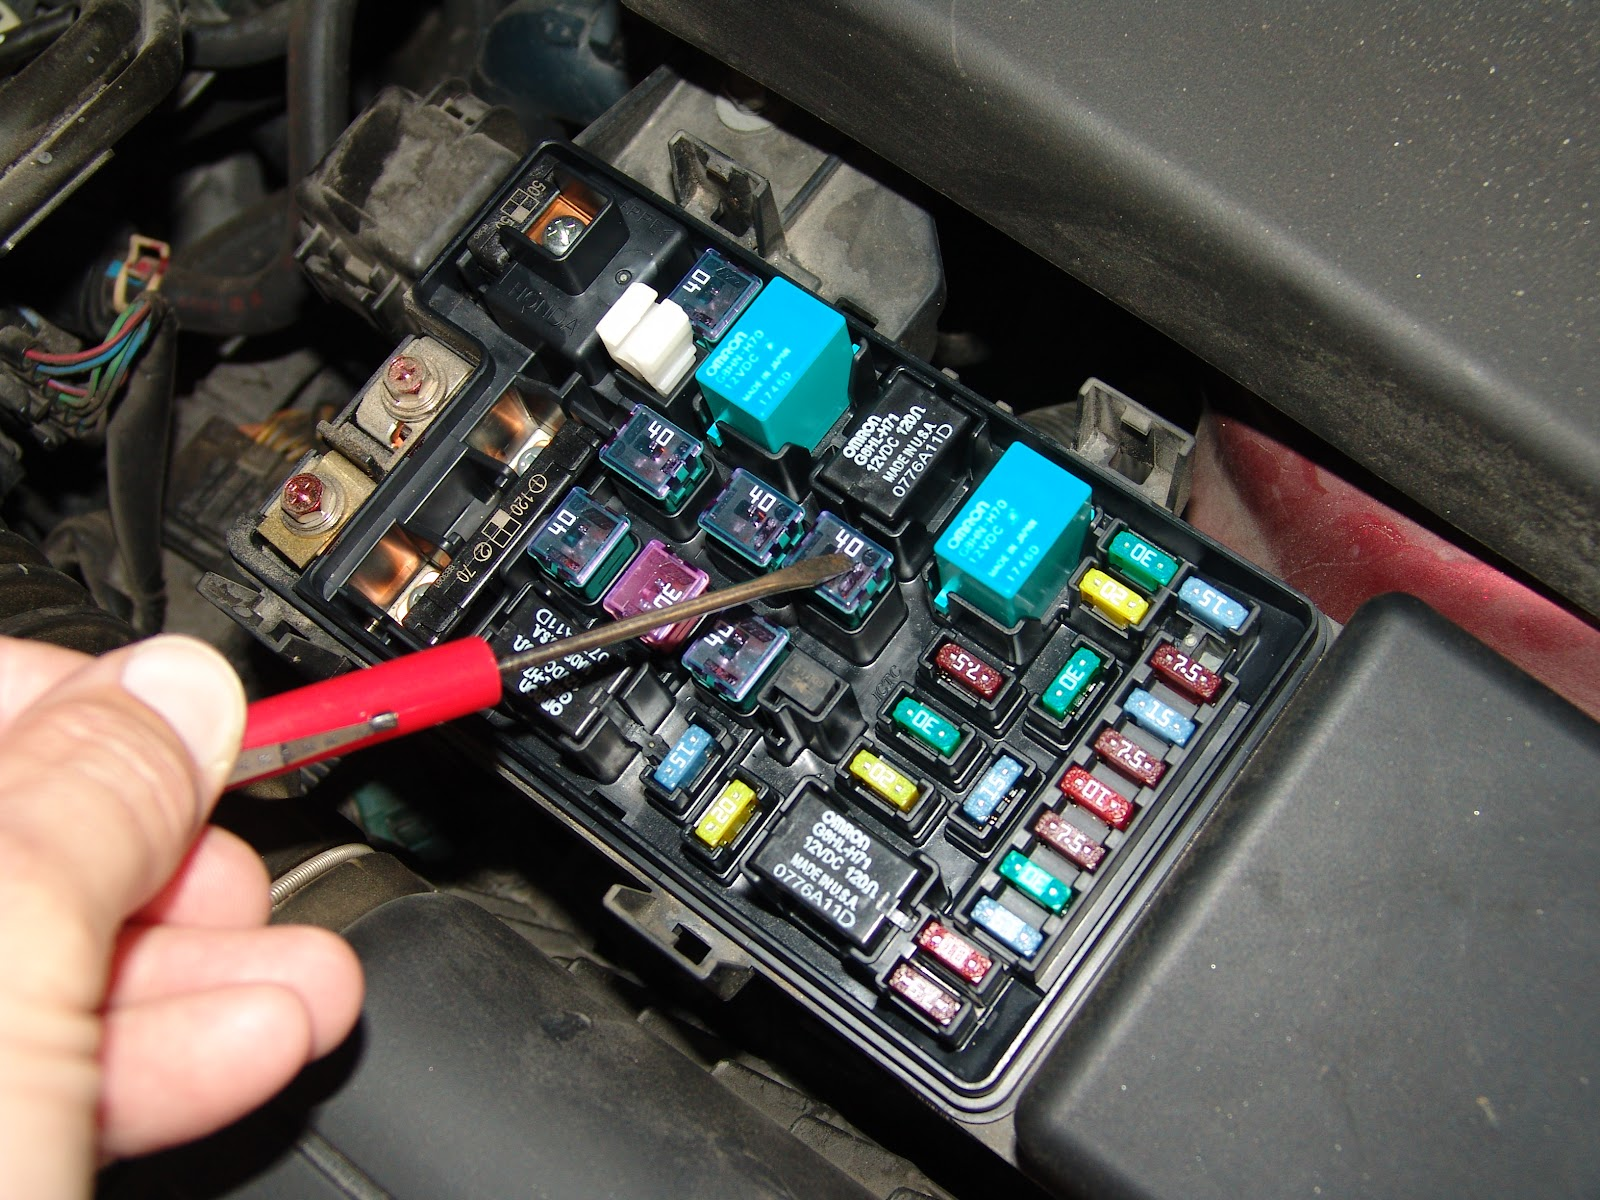 fuse box on 2006 acura tl wiring diagram expertfuse box on 2006 acura tl wiring diagrams [ 1600 x 1200 Pixel ]